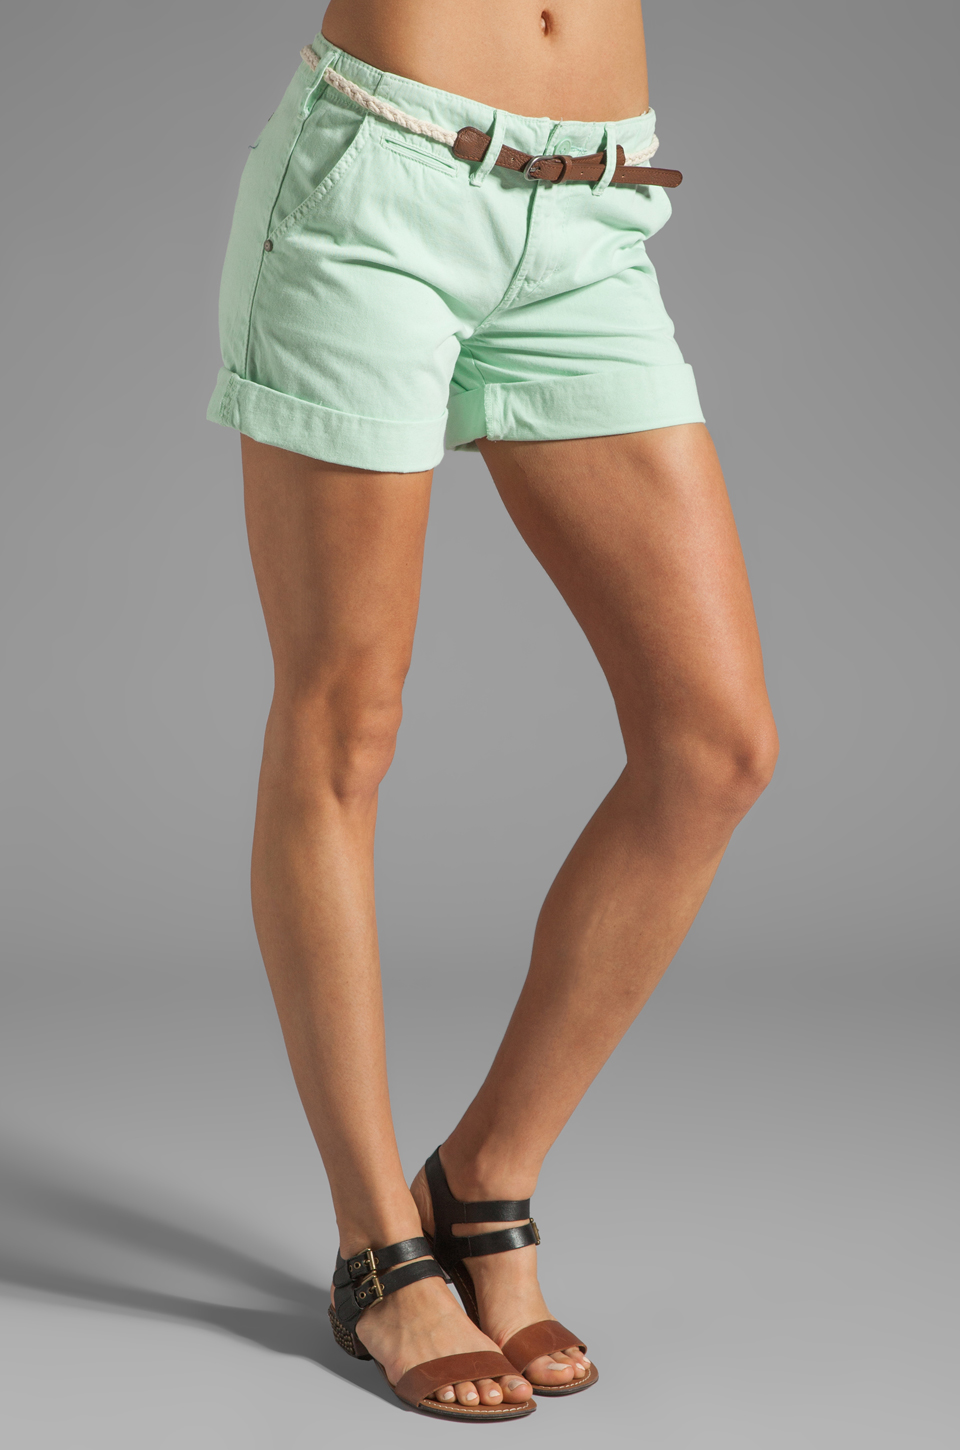 Sanctuary Liberty Roll Short with Belt in Mint